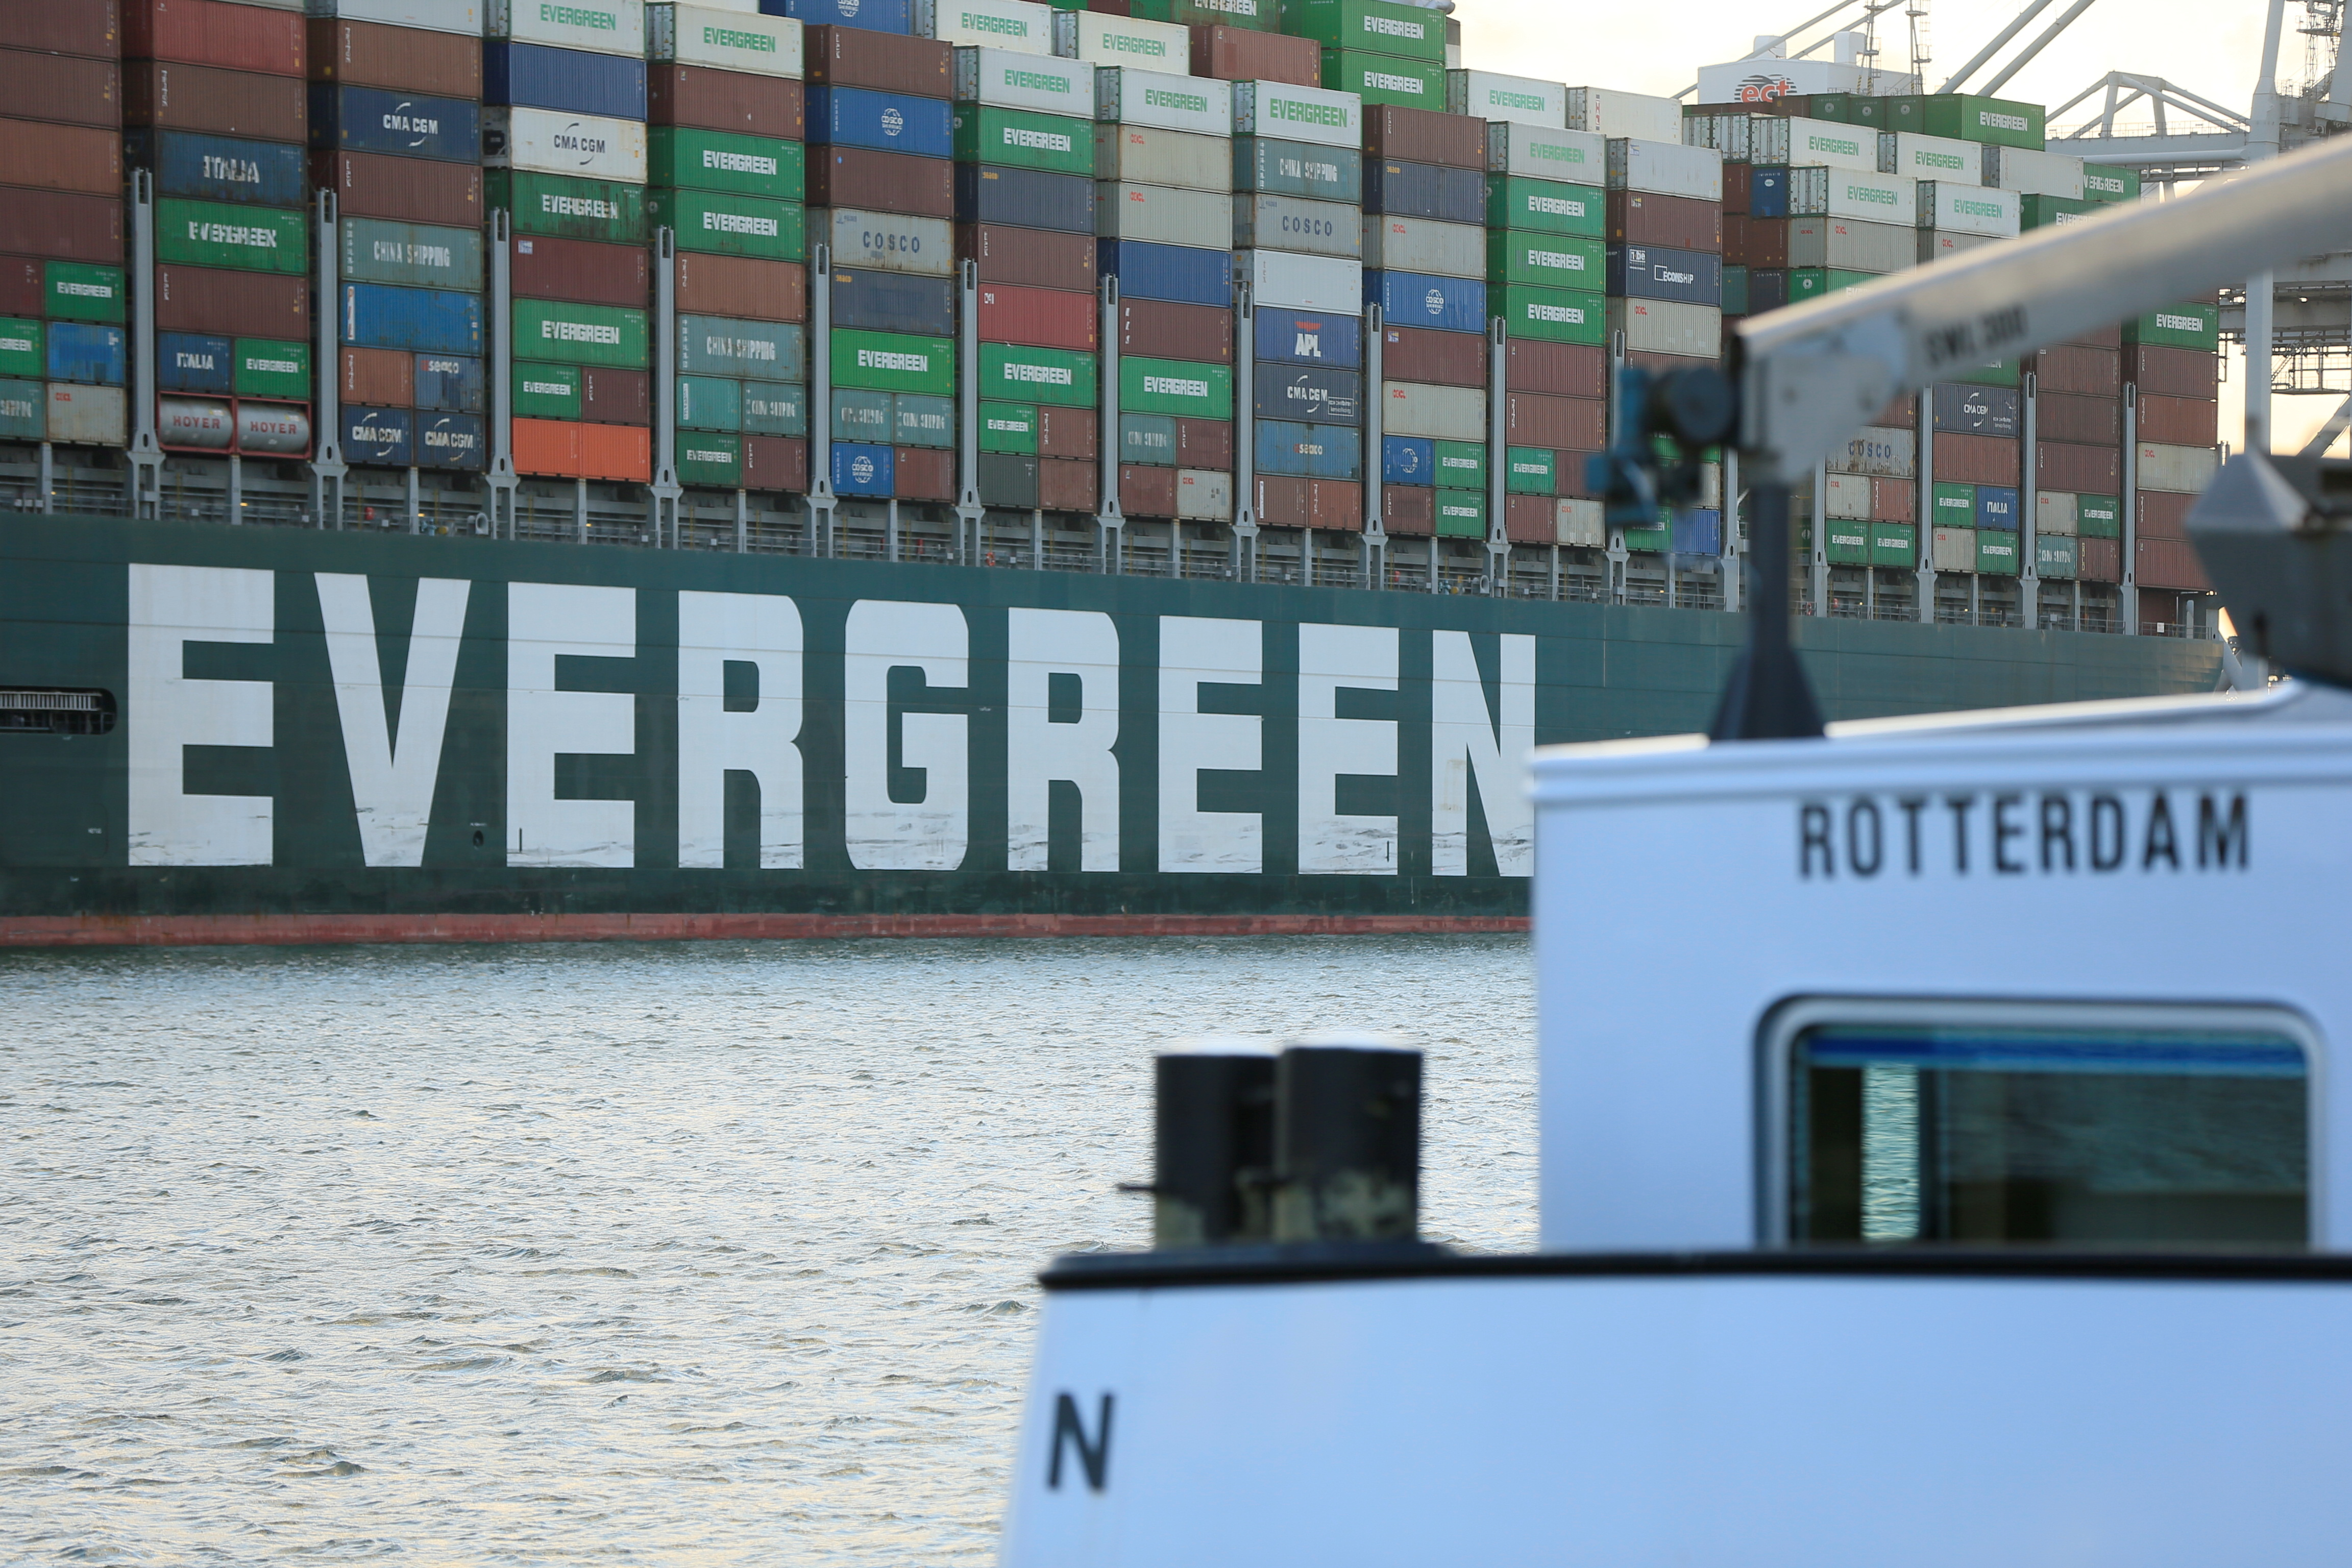 The Ever Given container ship that blocked the Suez Canal in March, docks in Rotterdam, Netherlands, July 29, 2021. REUTERS/Eva Plevier